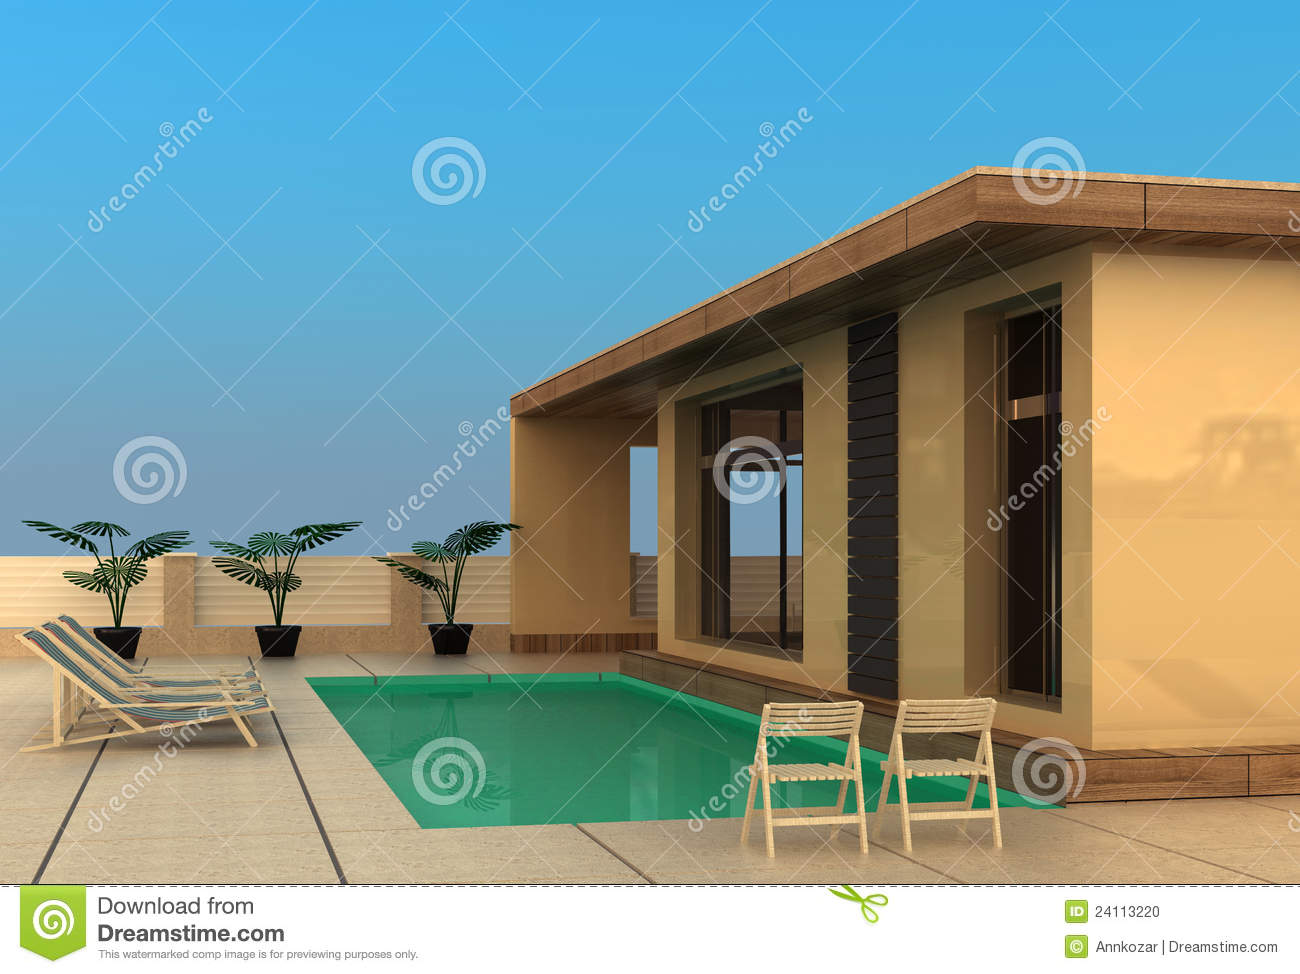 Vacation Home With Swimming Pool Stock Photo Image 24113220